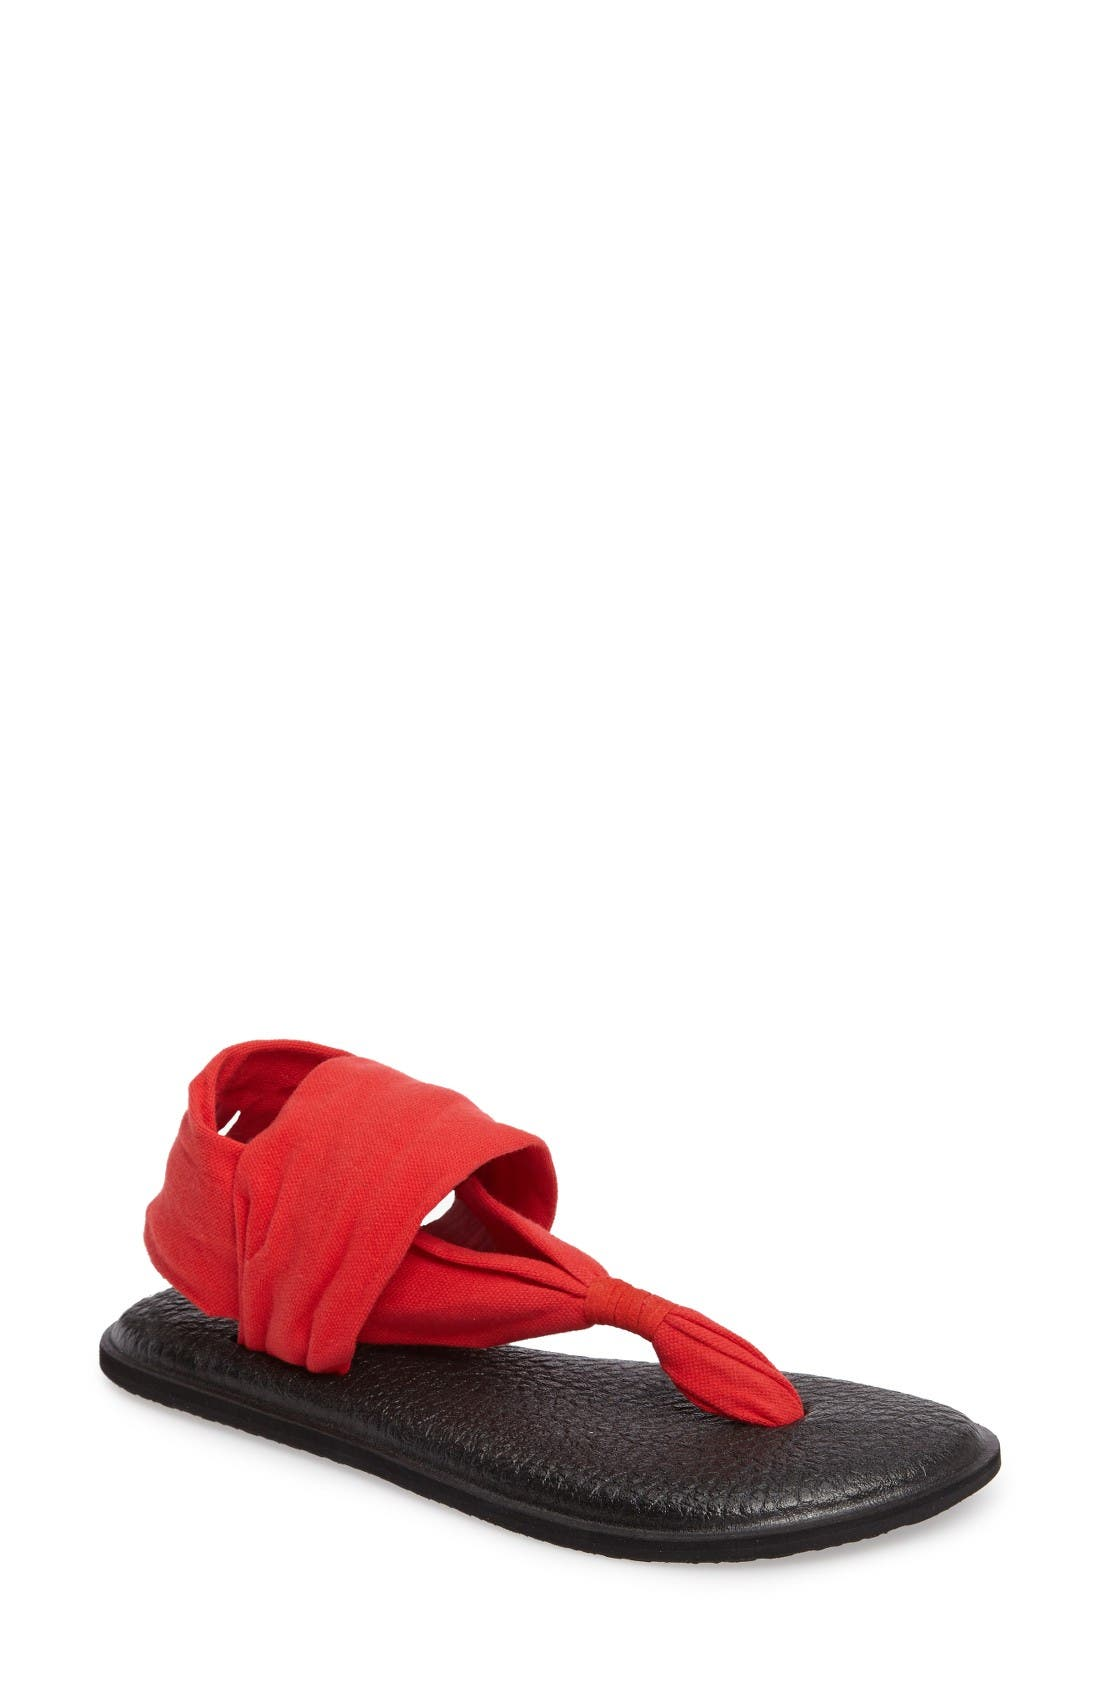 Alternate Image 1 Selected - Sanuk 'Yoga Sling 2' Sandal (Women)